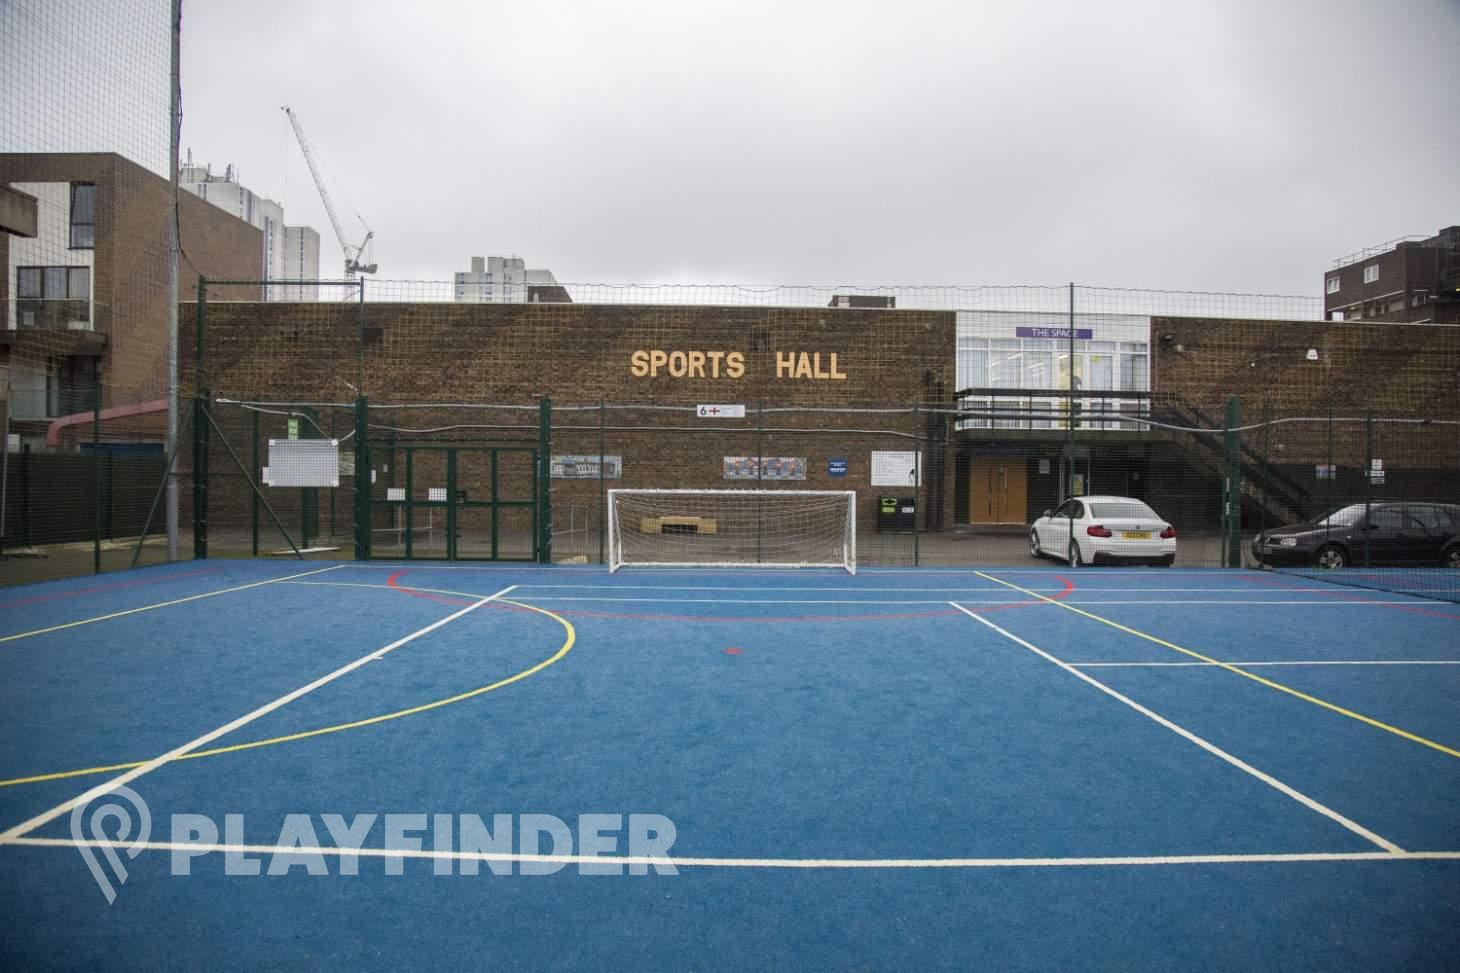 Powerleague Vauxhall 5 a side | 3G Astroturf football pitch